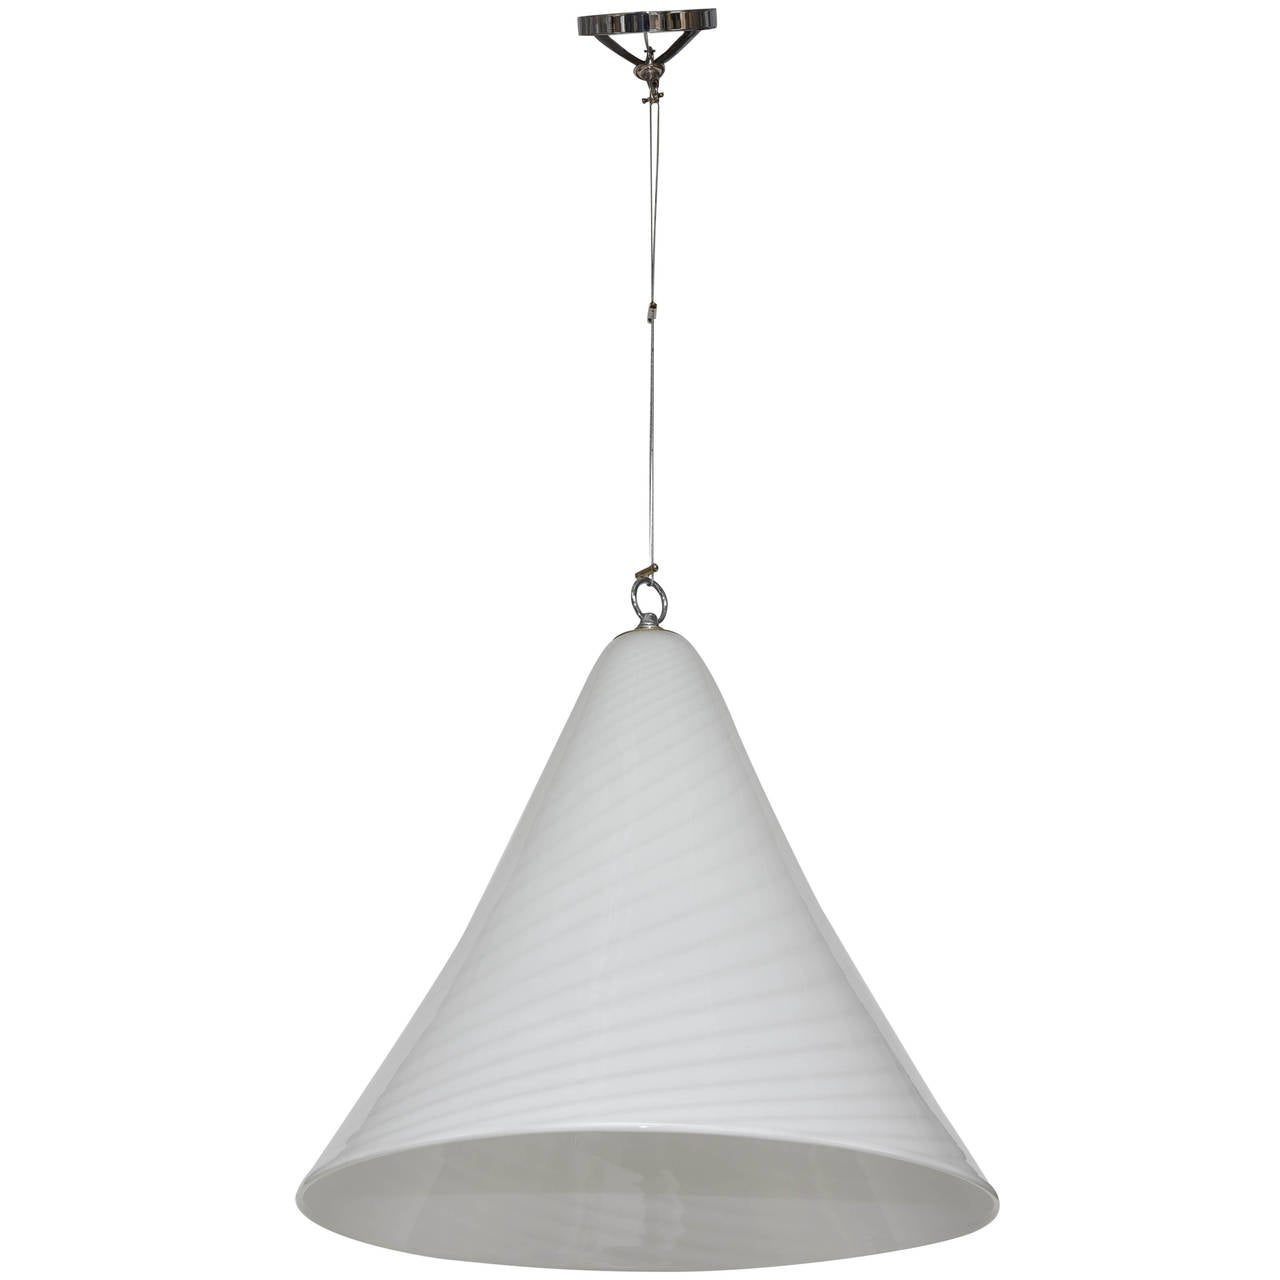 murano cone pendant light for sale at 1stdibs